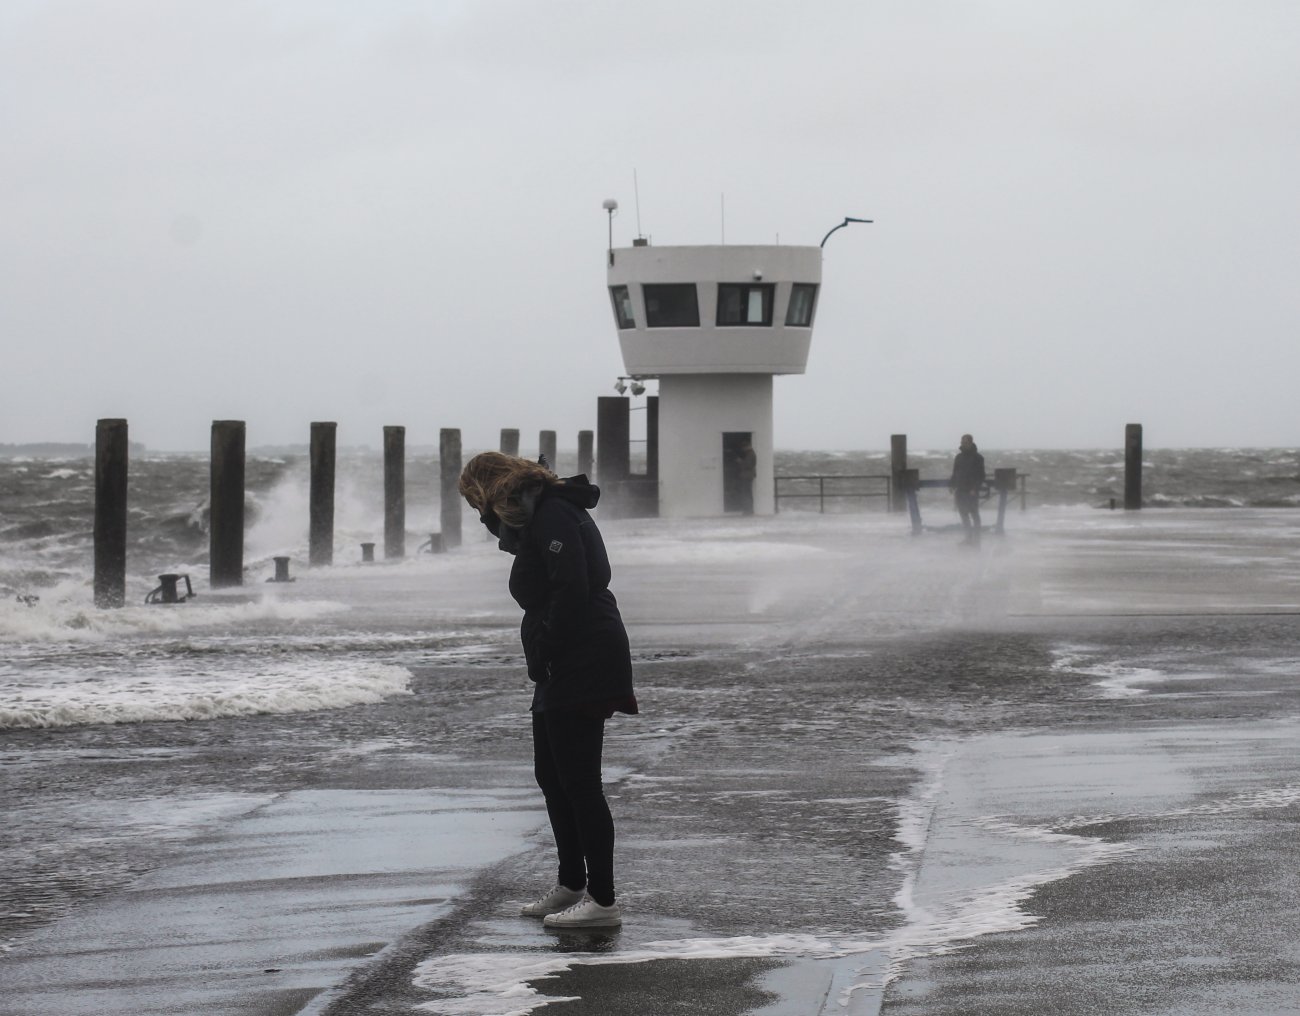 2018_Sturm_Nordsee (9).png